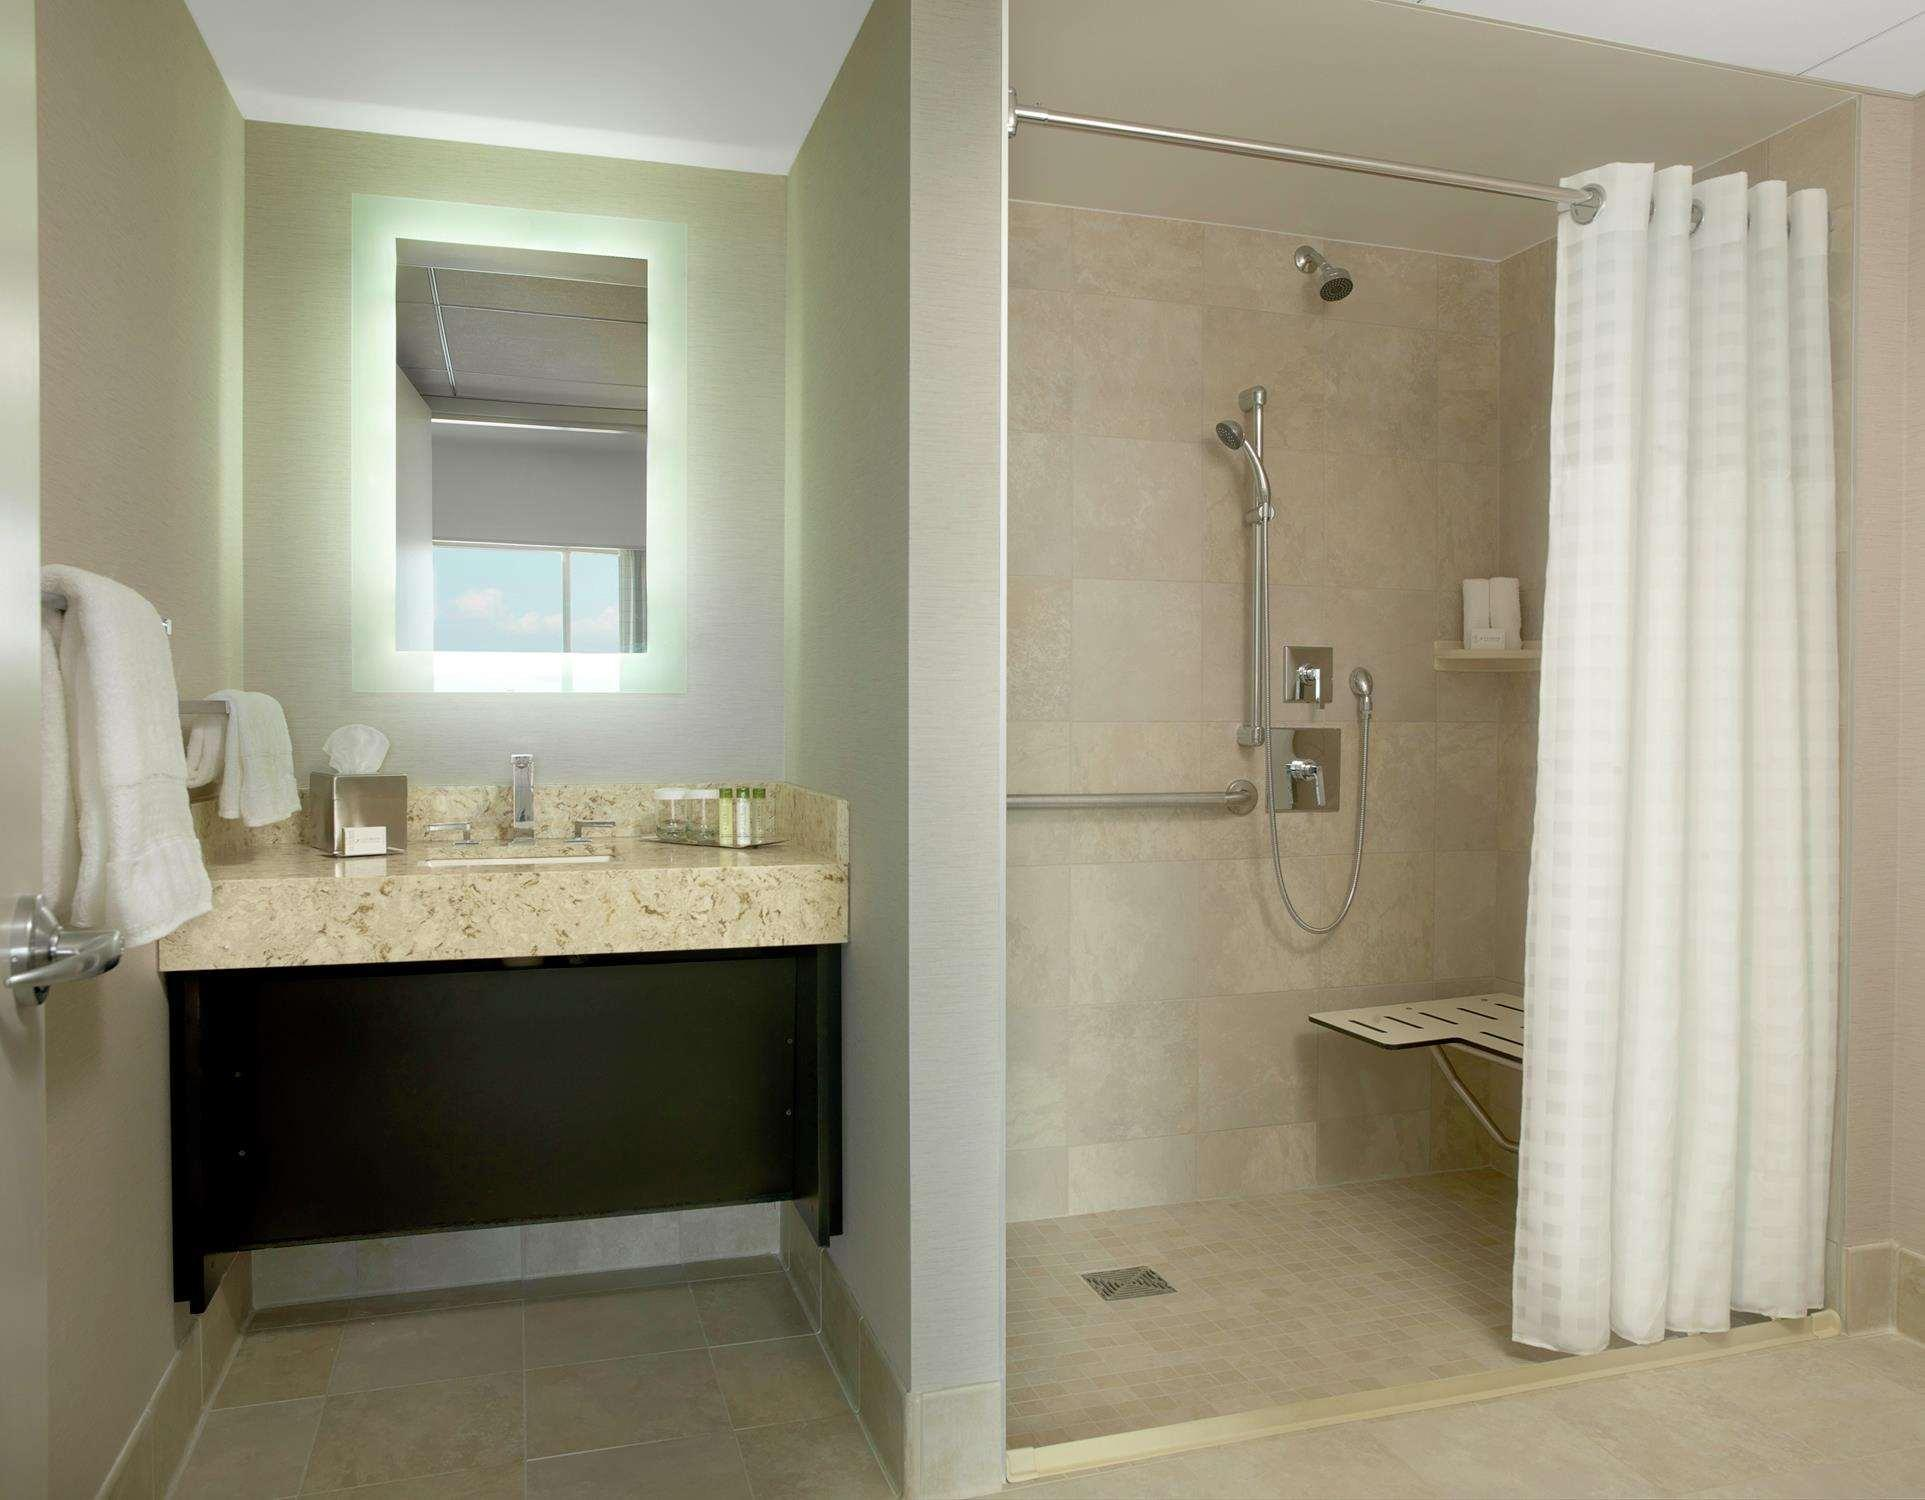 2 Double Accessible with Roll In Shower